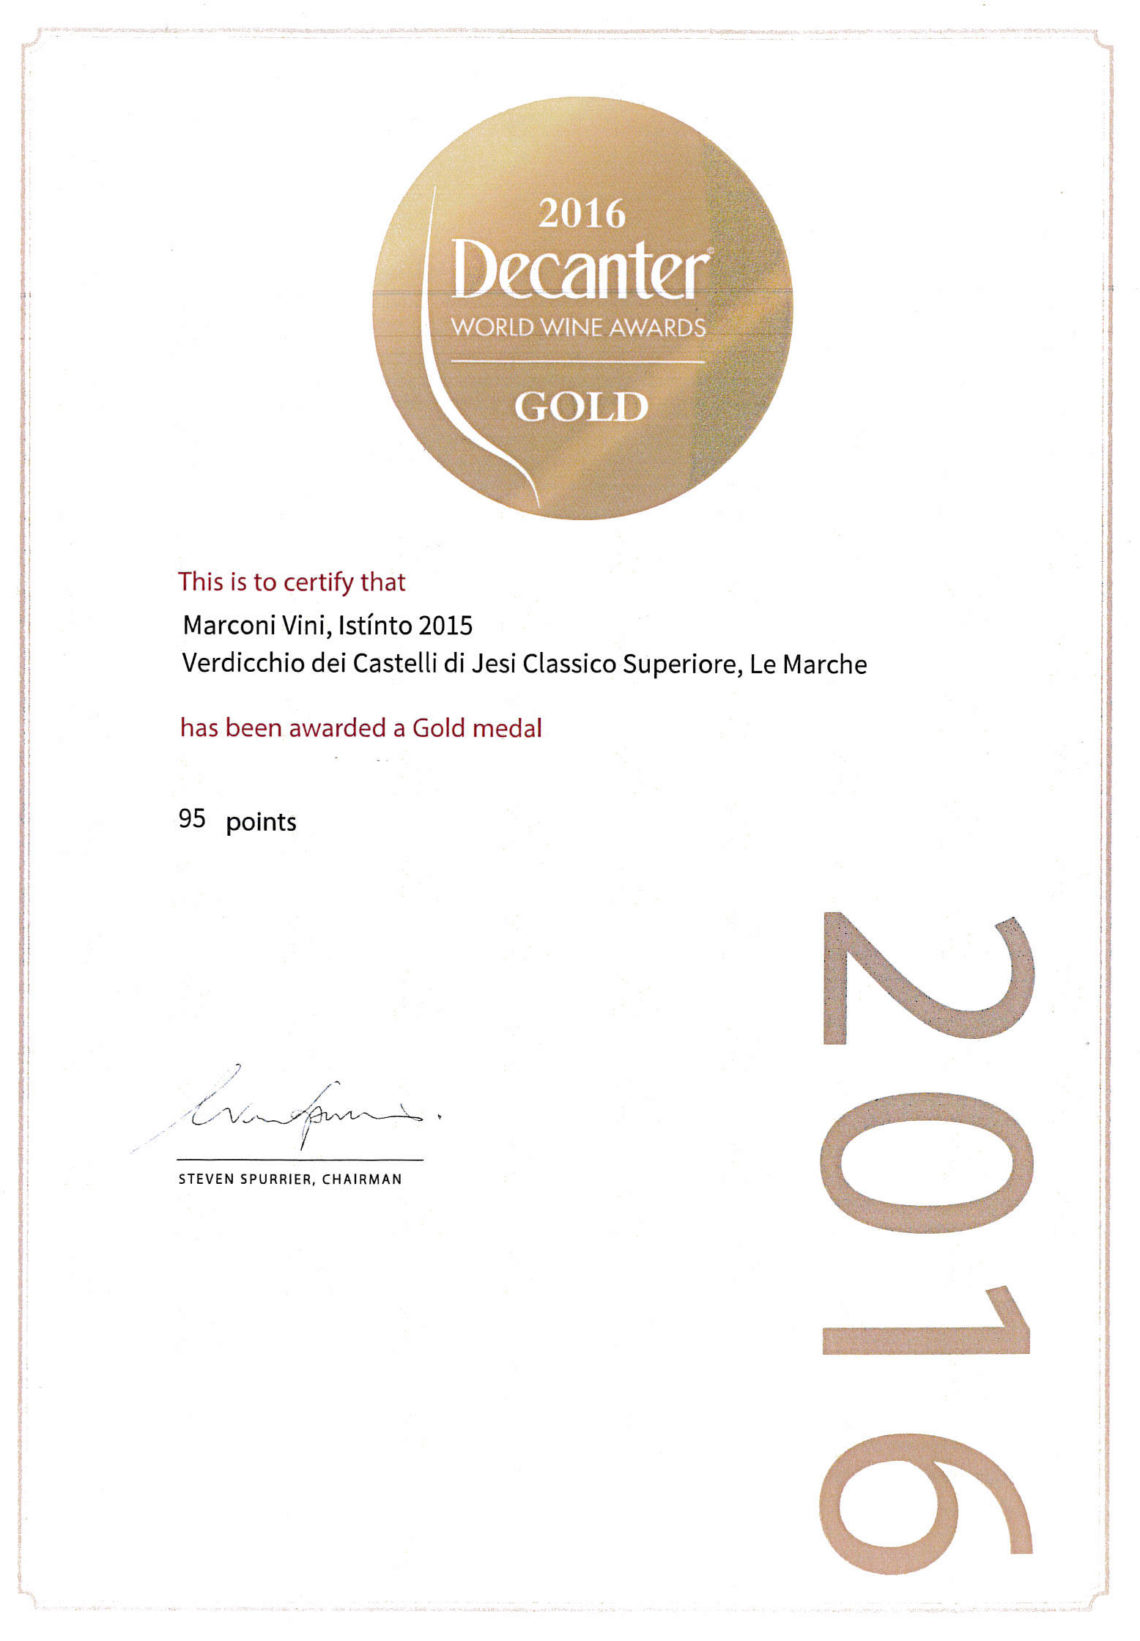 Marconi Vini - Verdicchio dei Castelli di Jesi Classico Superiore 2016 - Gold - Decanter World Wine Awards 2016